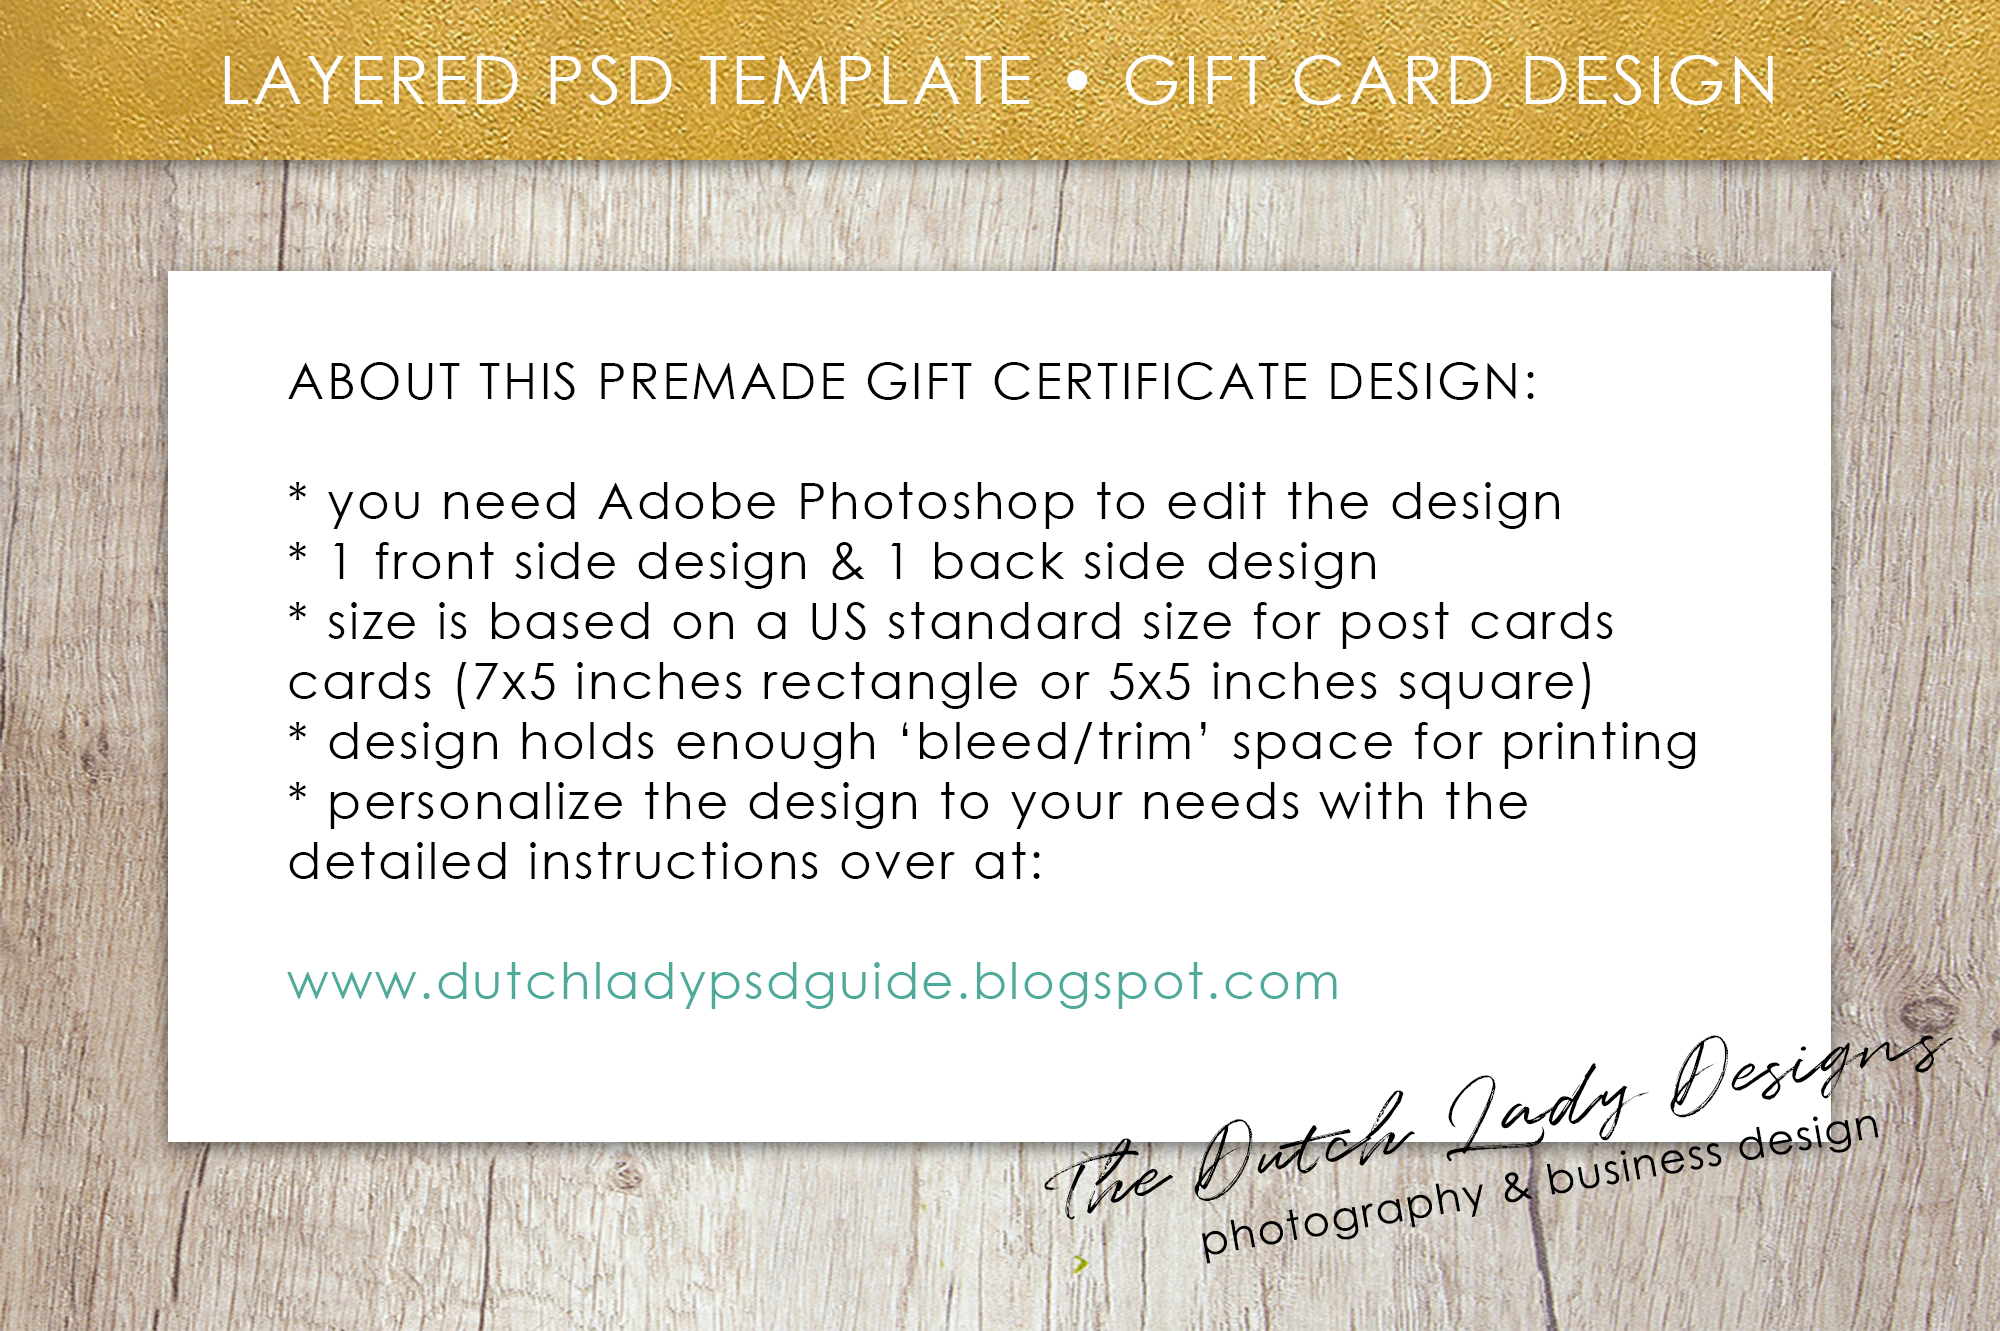 Photo Gift Card Template for Adobe Photoshop - #52 example image 6